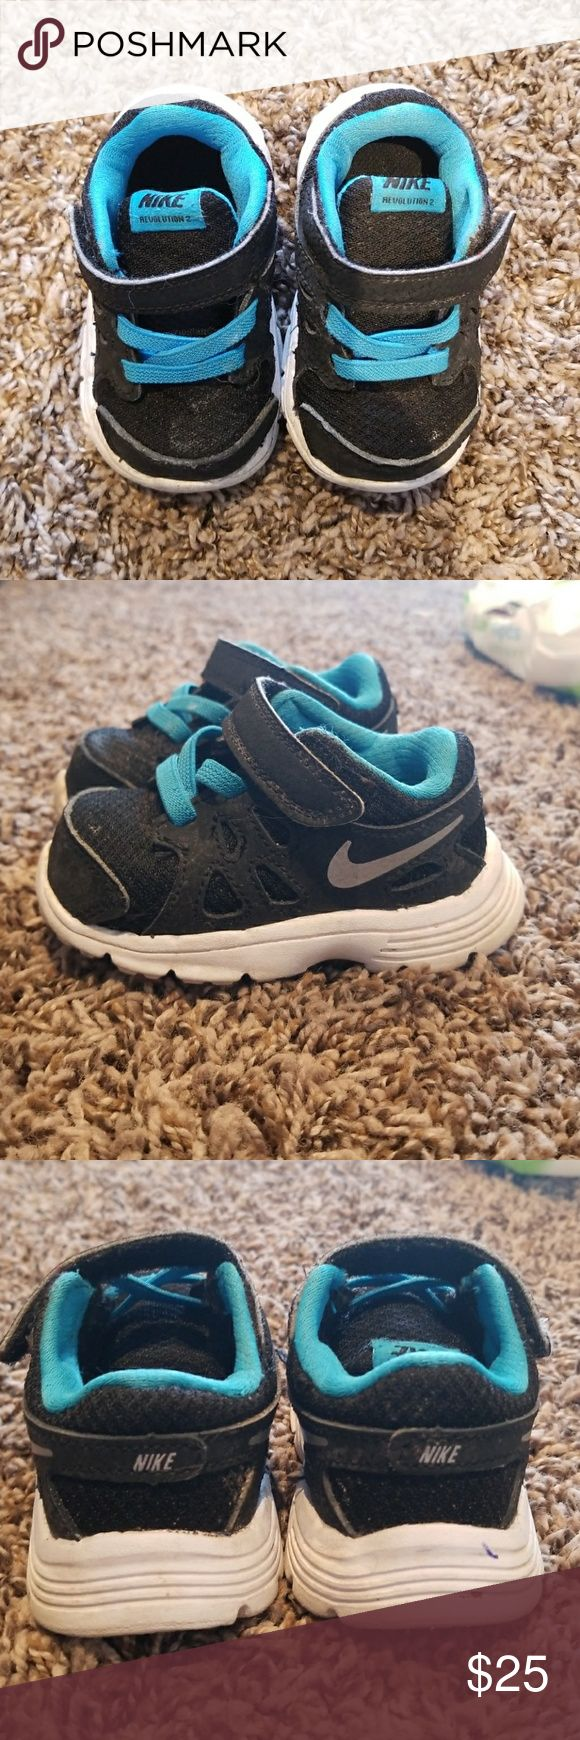 Nike Baby tennis shoes Adorable baby Nikes! Comfortable and light weight. Easy on and off with the Velcro strap. Nike Shoes Sneakers